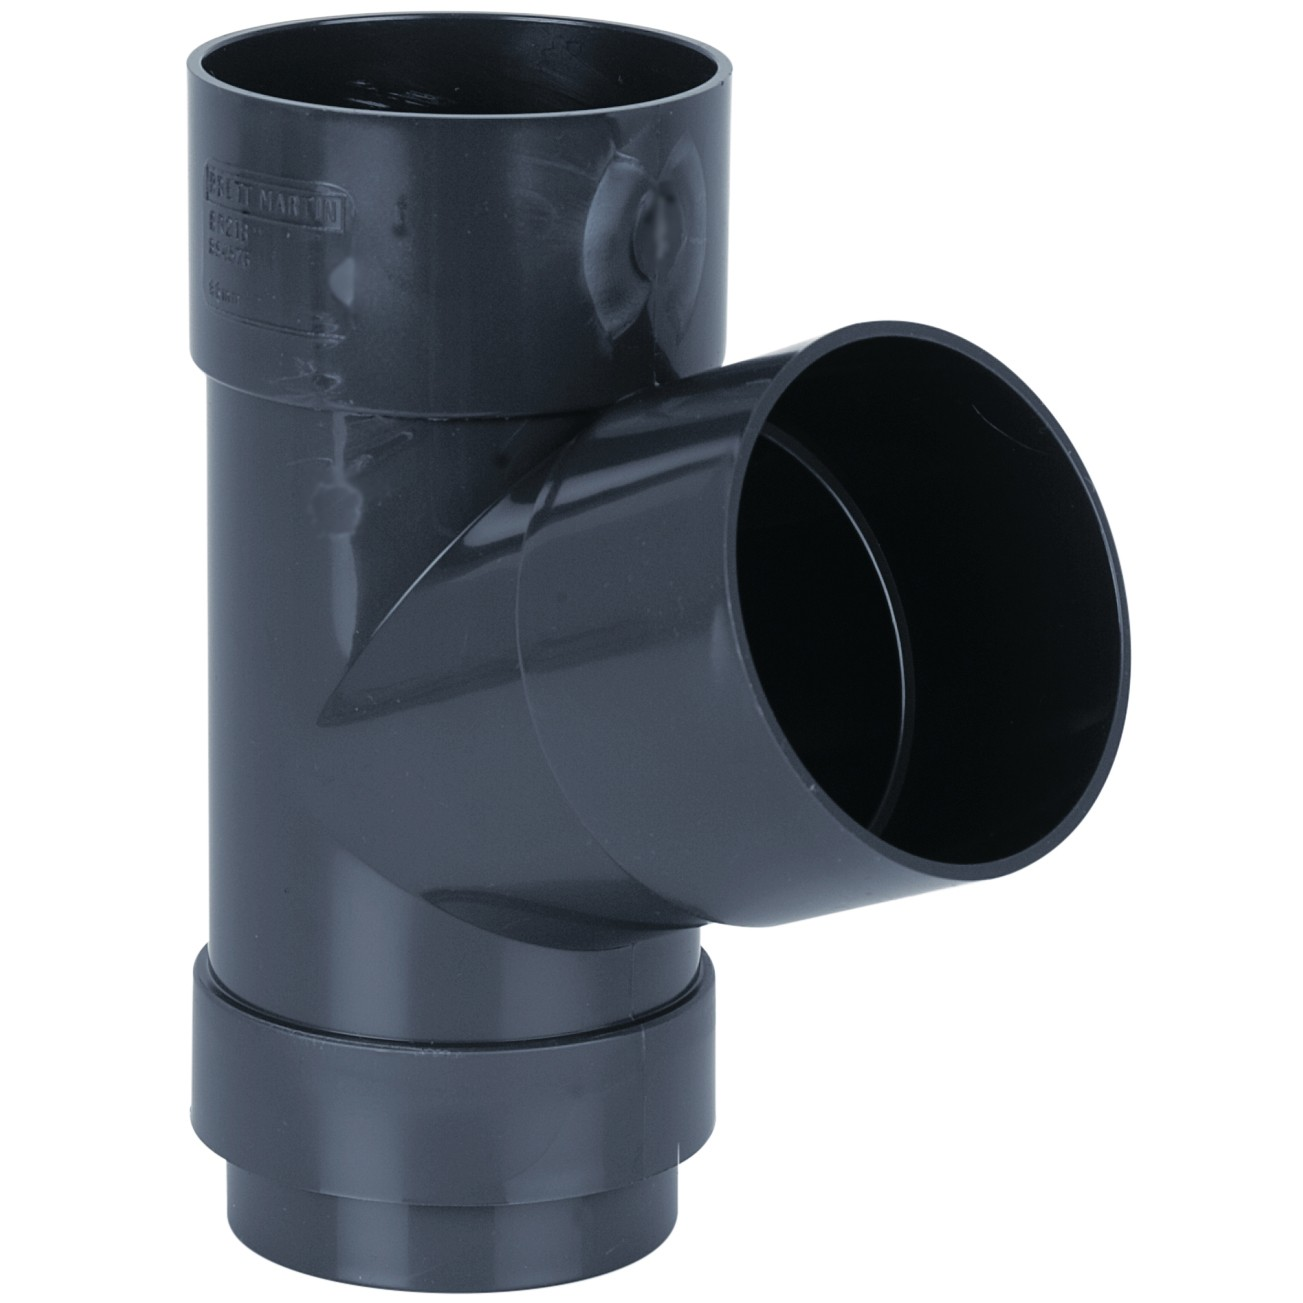 Brett Martin 68mm Round Anthracite Down Pipe 112.5 Degree Branch - Anthracite Grey